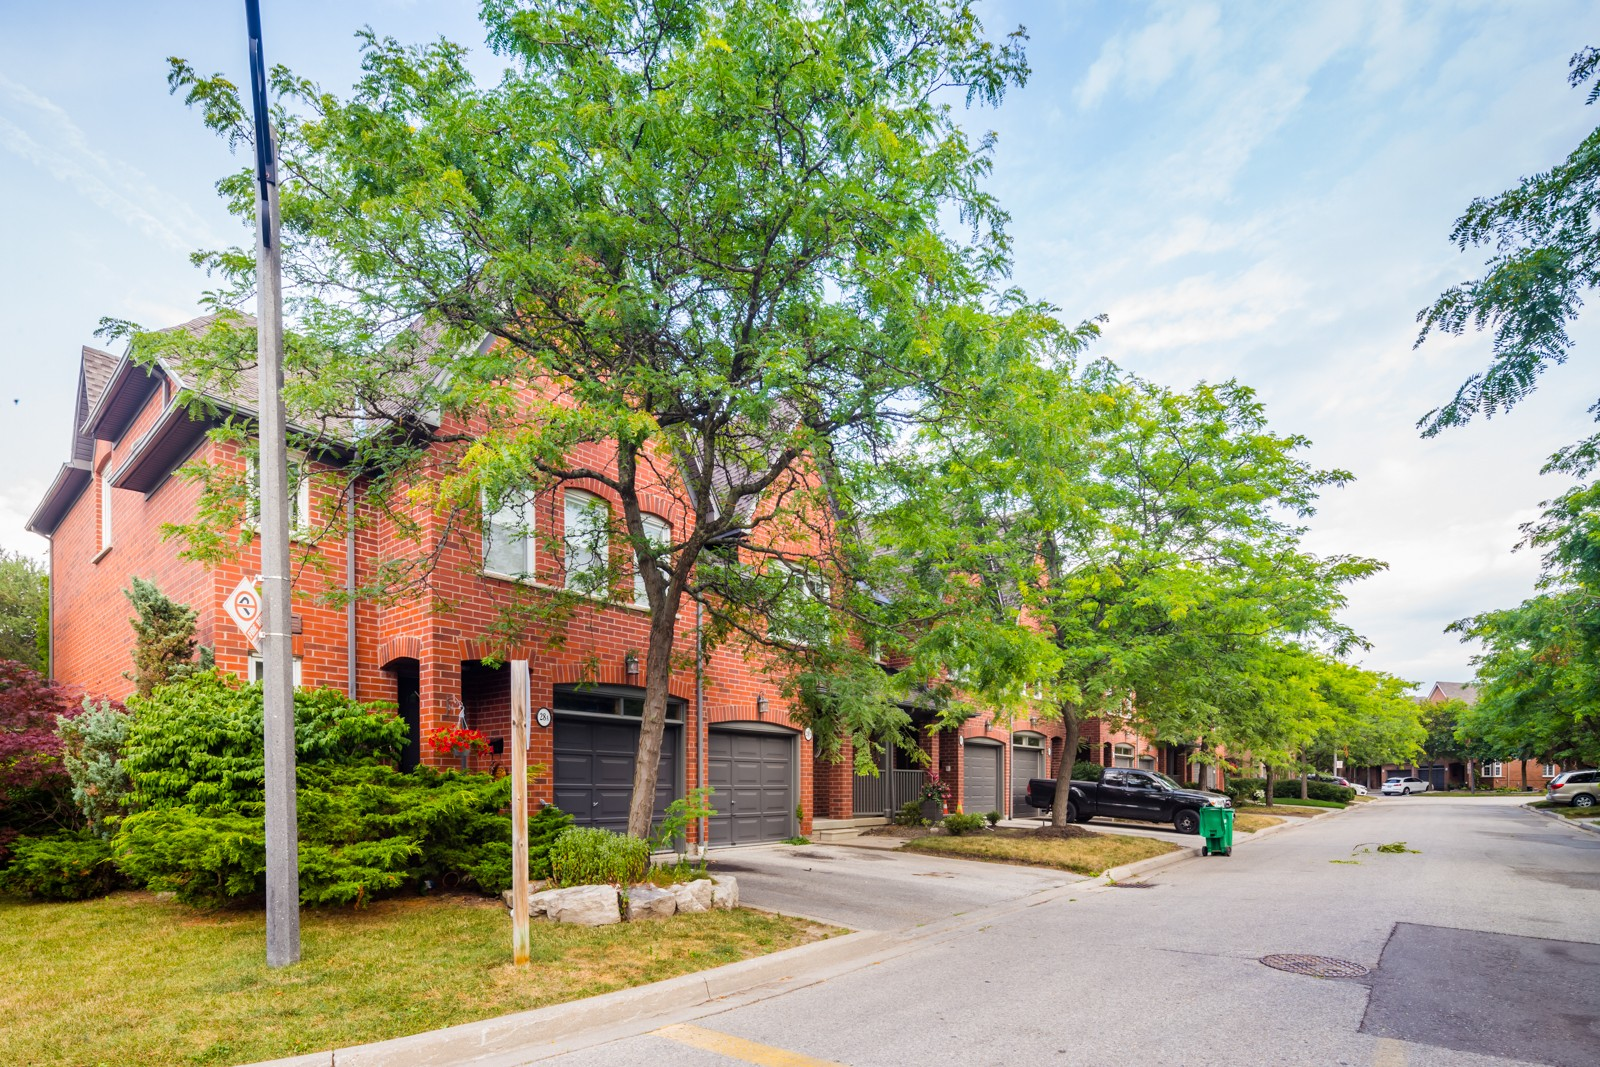 1084 Queen Street West Townhouses at 1084 Queen St W, Mississauga 1